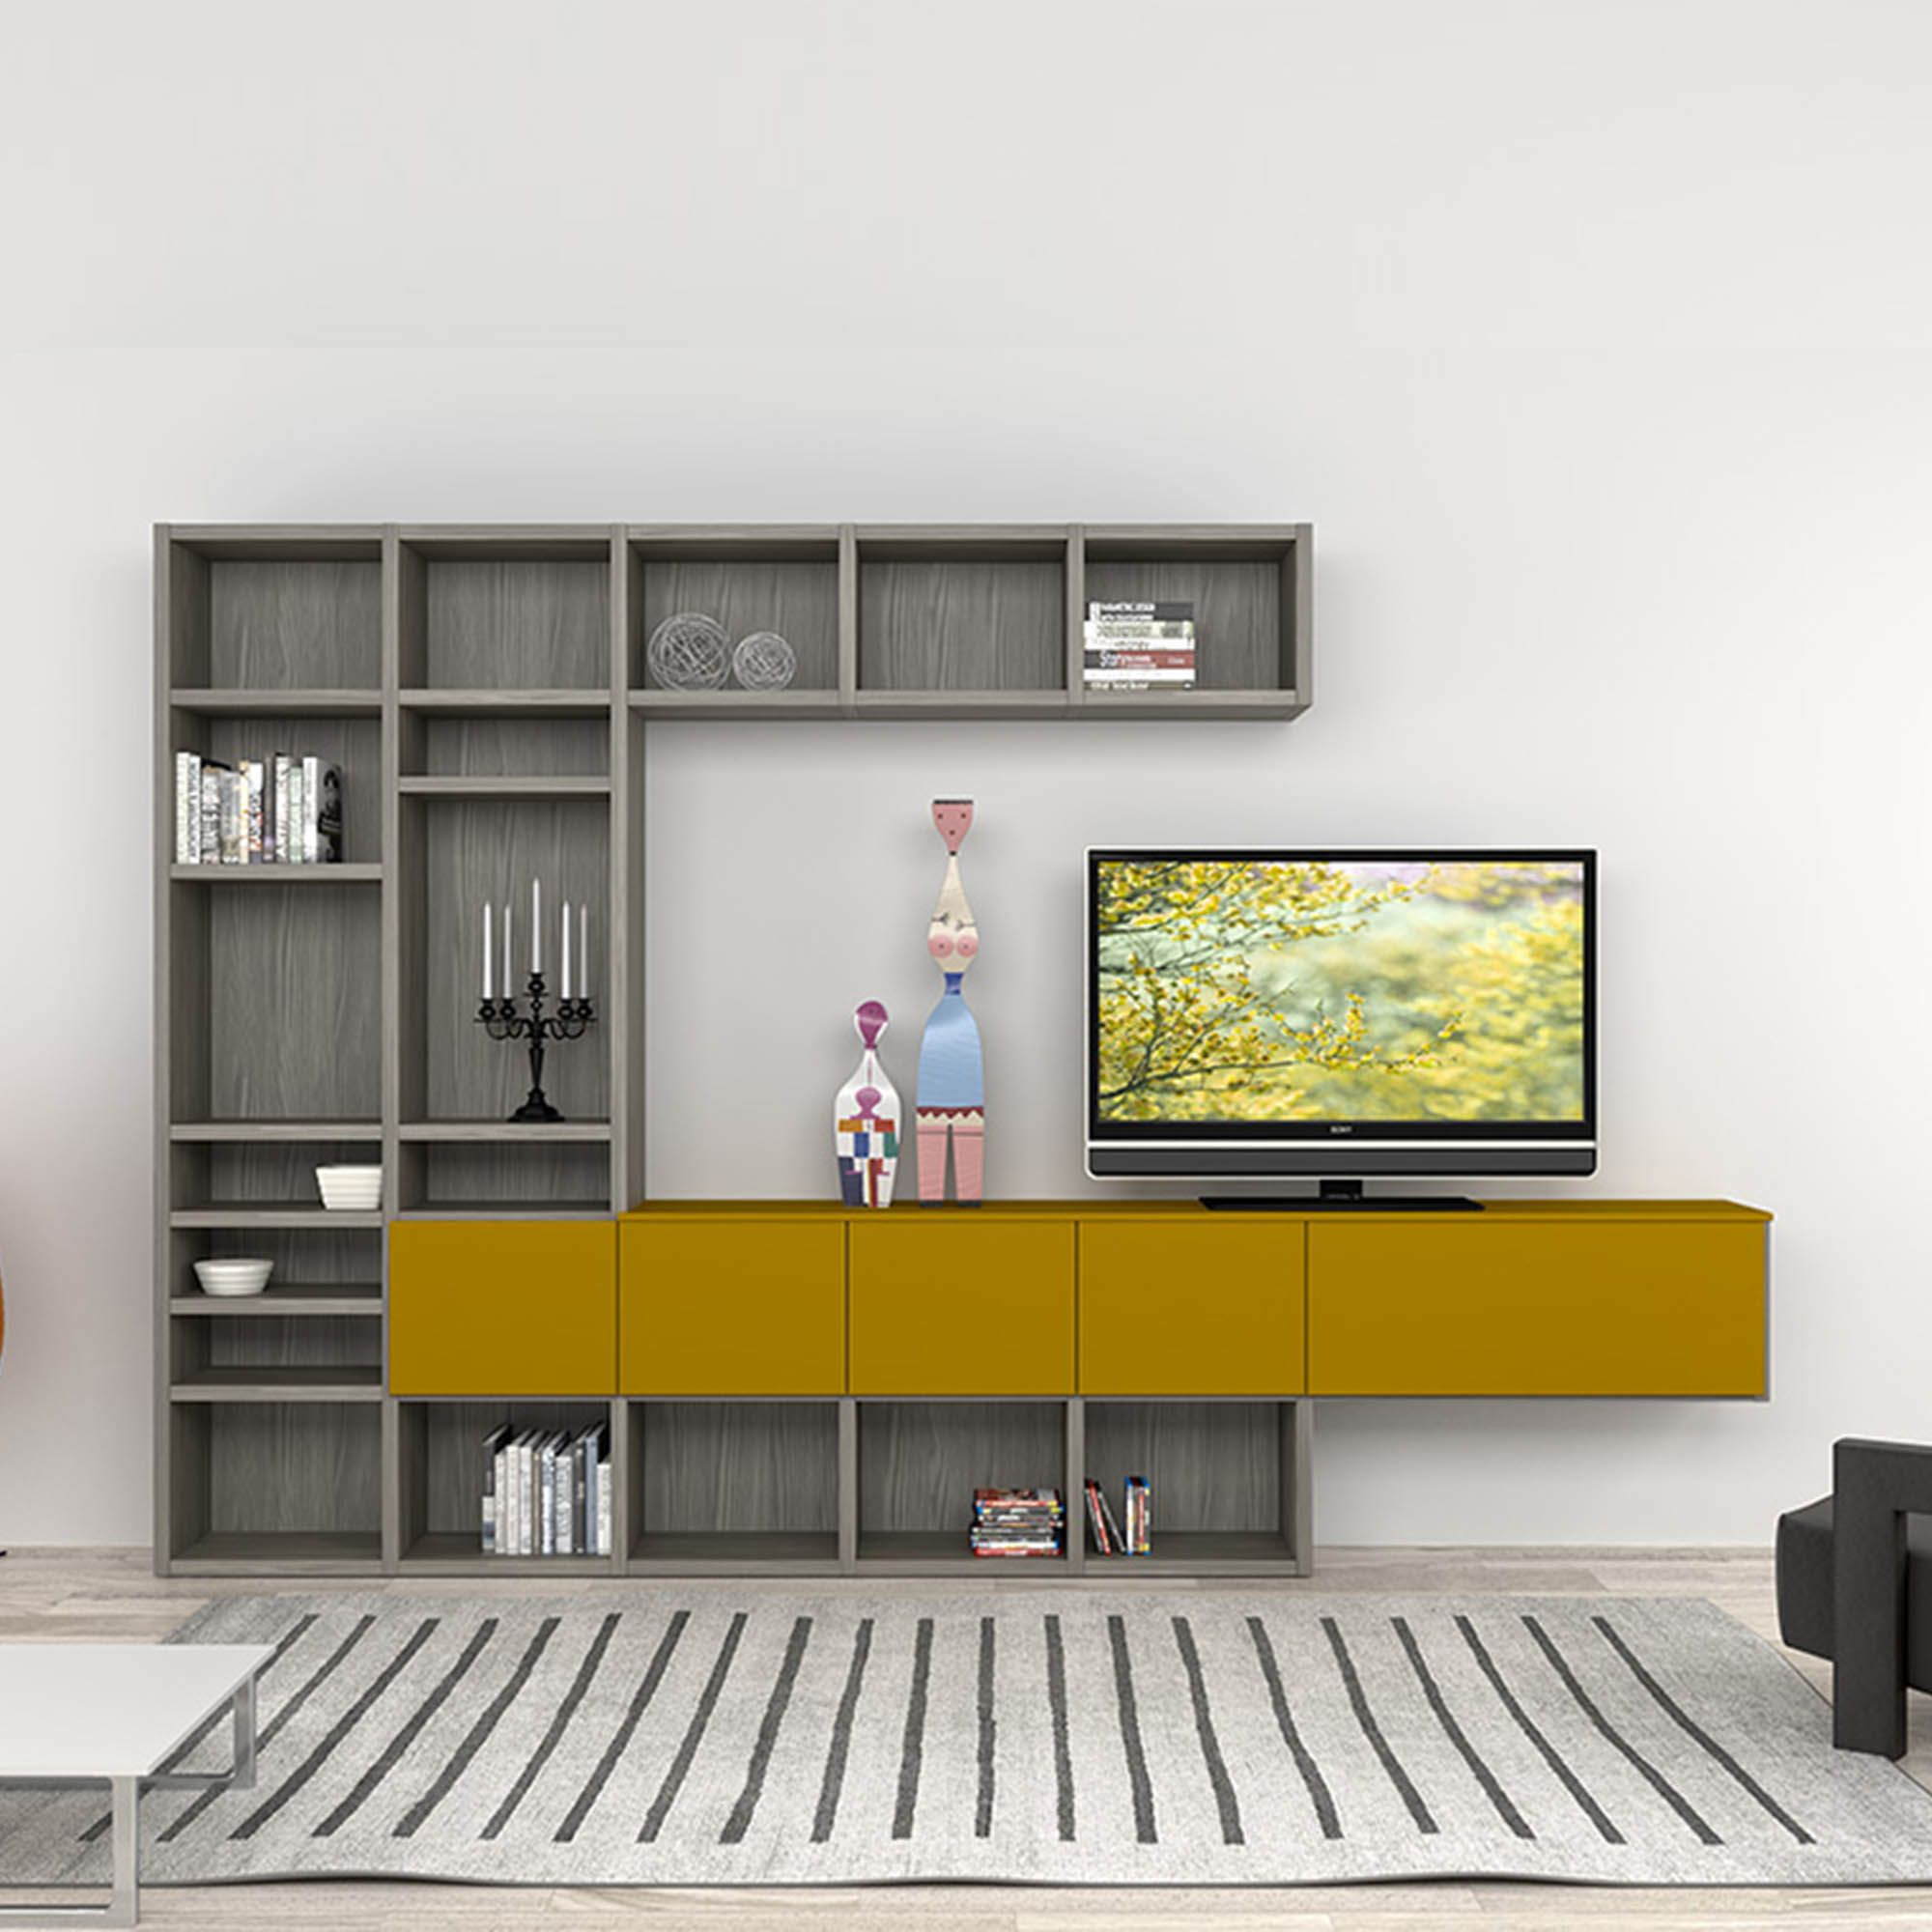 wooden wall units living room decorating ideas burgundy sofa for terrific storage furniture of the display stylish grey and green yellow color unit freestanding tv